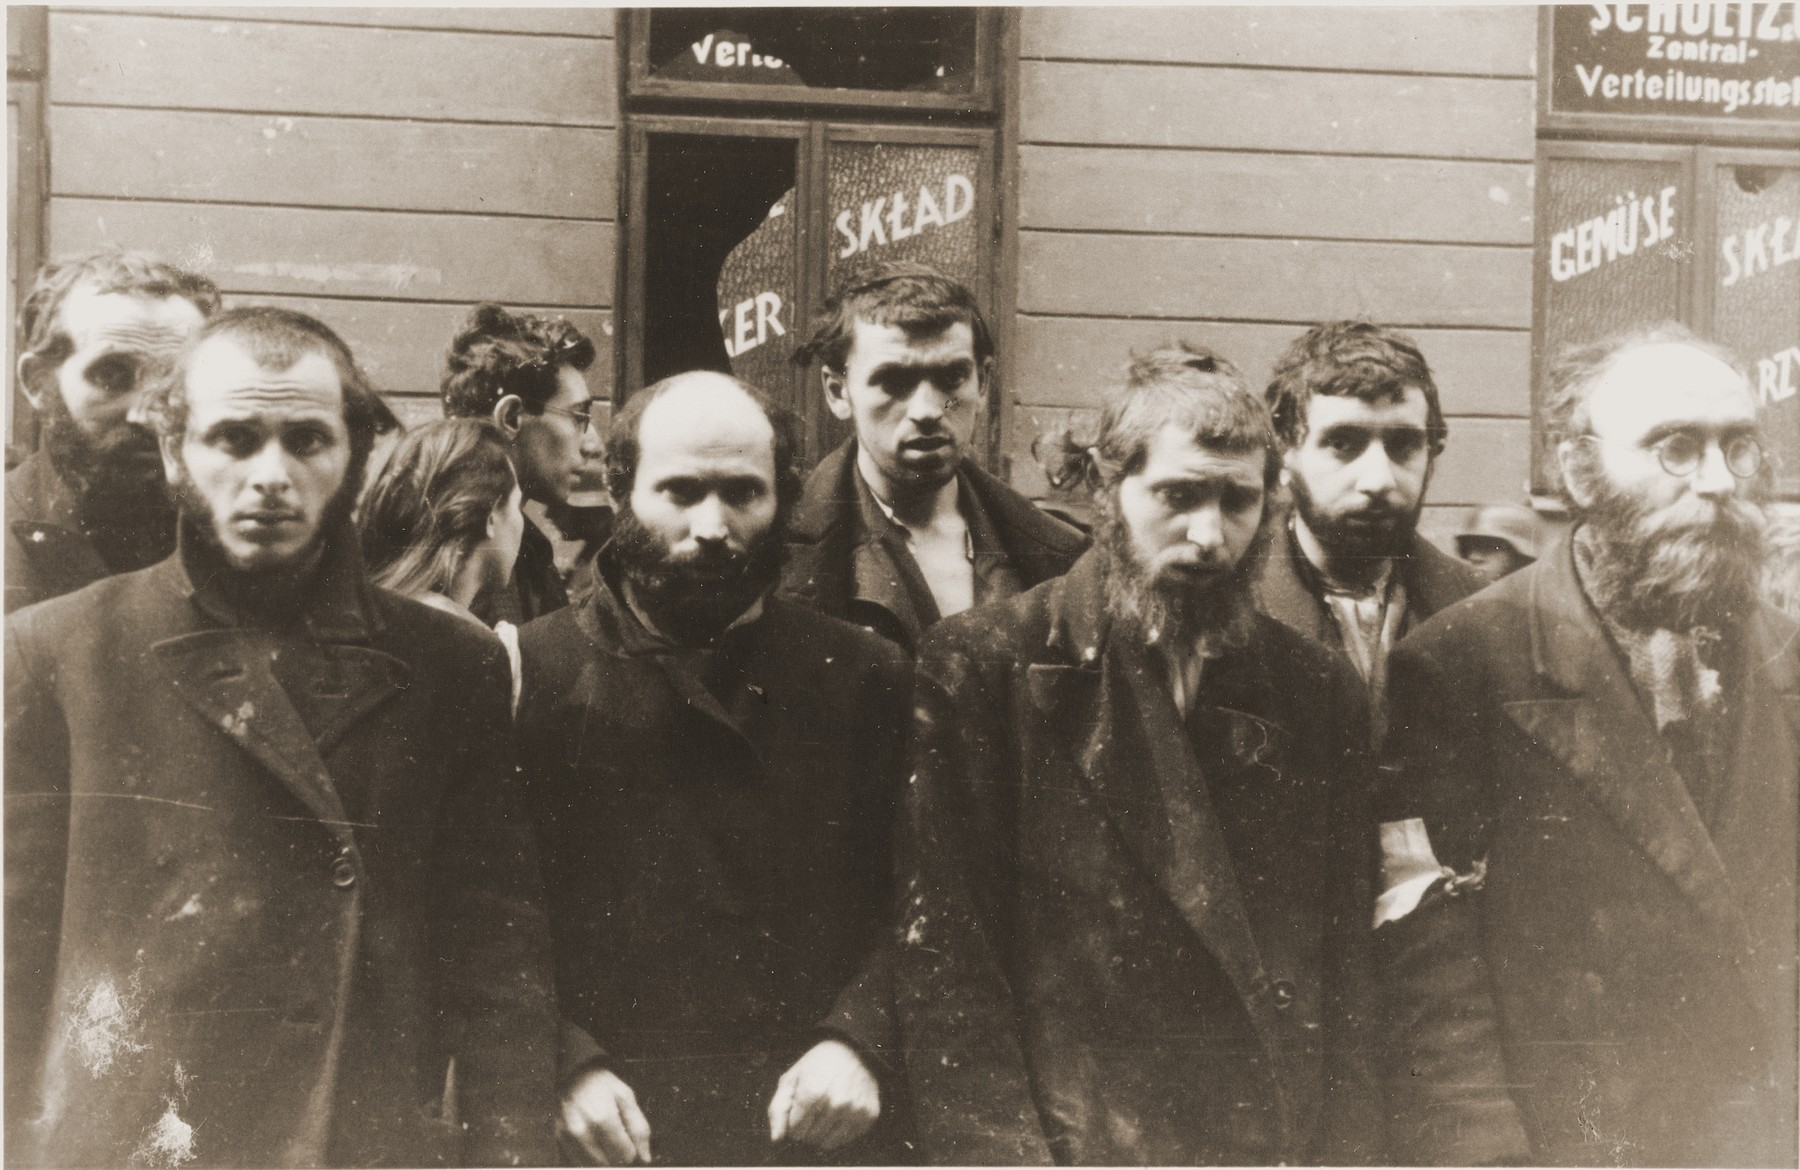 "Religious Jews captured by the SS during the Warsaw ghetto uprising.  The original German caption reads: ""Jewish rabbis.""  From left to right are Rabbi Lipa Kaplan, Eliyahu Levin (son of Rabbi Hersh Henoch of Bedzin), Mendel Alter (son of Rabbi Nechemya Alter); Yankel Levin (son of Rabbi Mottel Levin of Lodz and grandson of the rabbi of Bedzin), unknown and Rabbi Heschel Rappaport, a Gerer Chassid and mentor to young Chassidim."